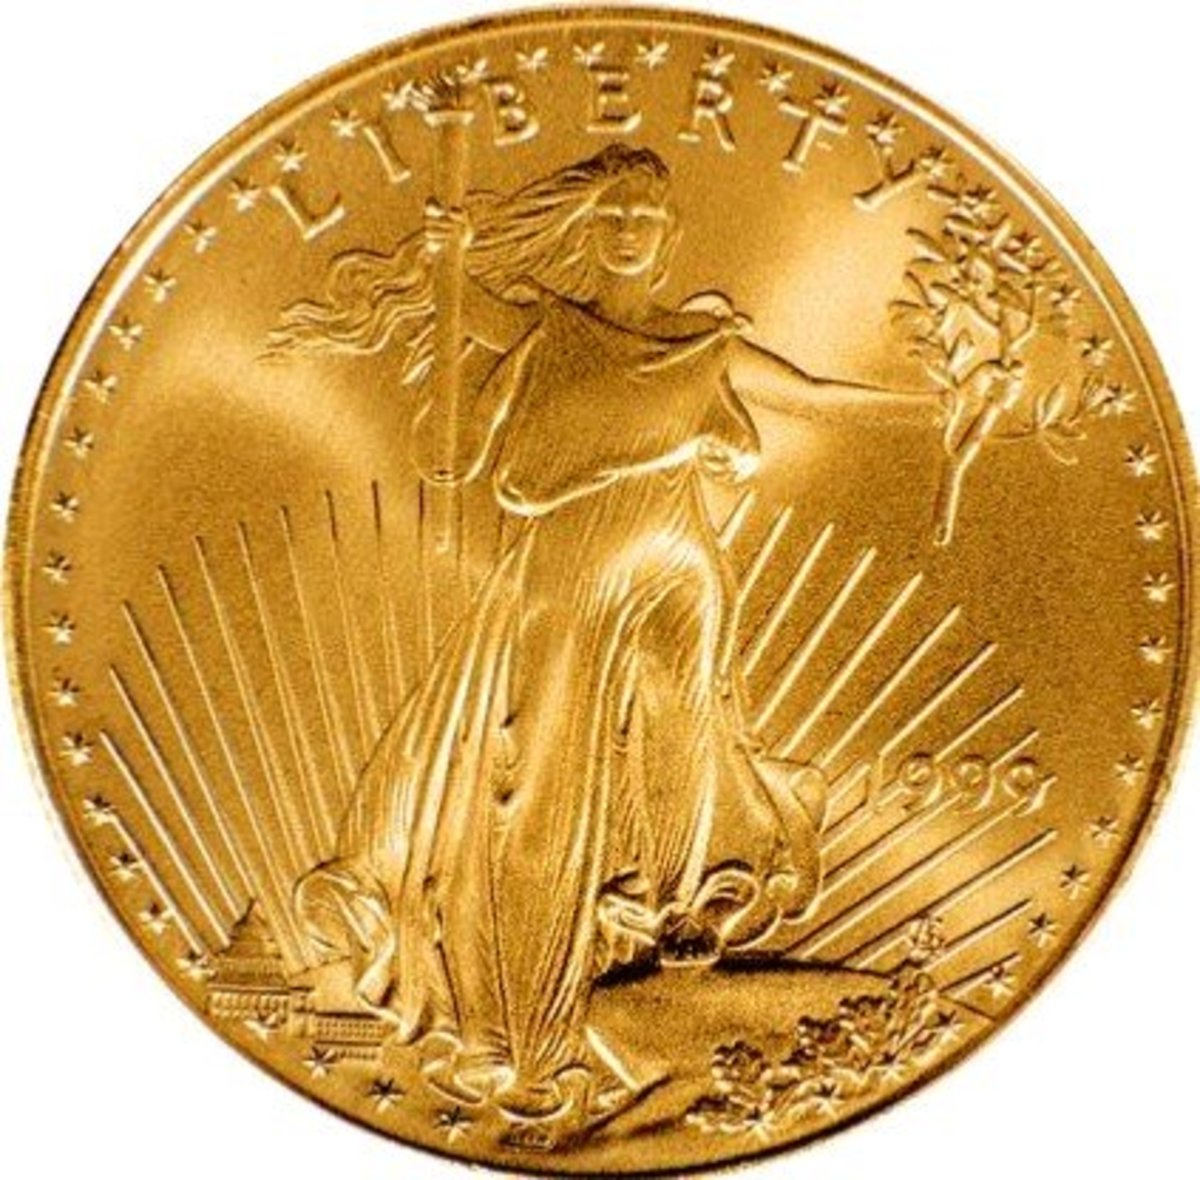 A gold coin in a dream may mean the dreamer is rich in virtues and inner strength.